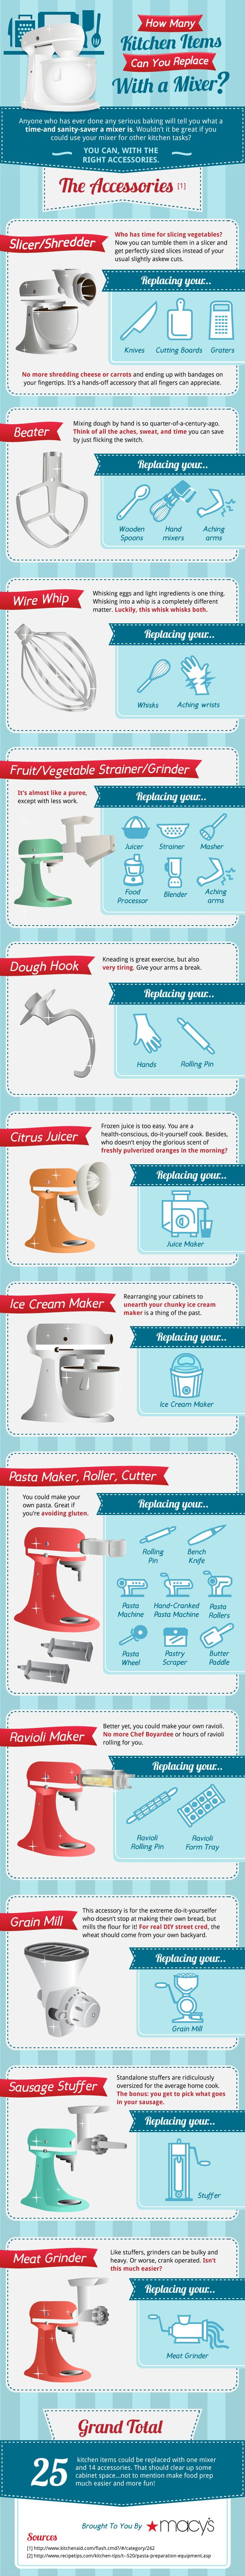 7 best Kitchenaid Mixer images on Pinterest | Kitchen aid mixer ...